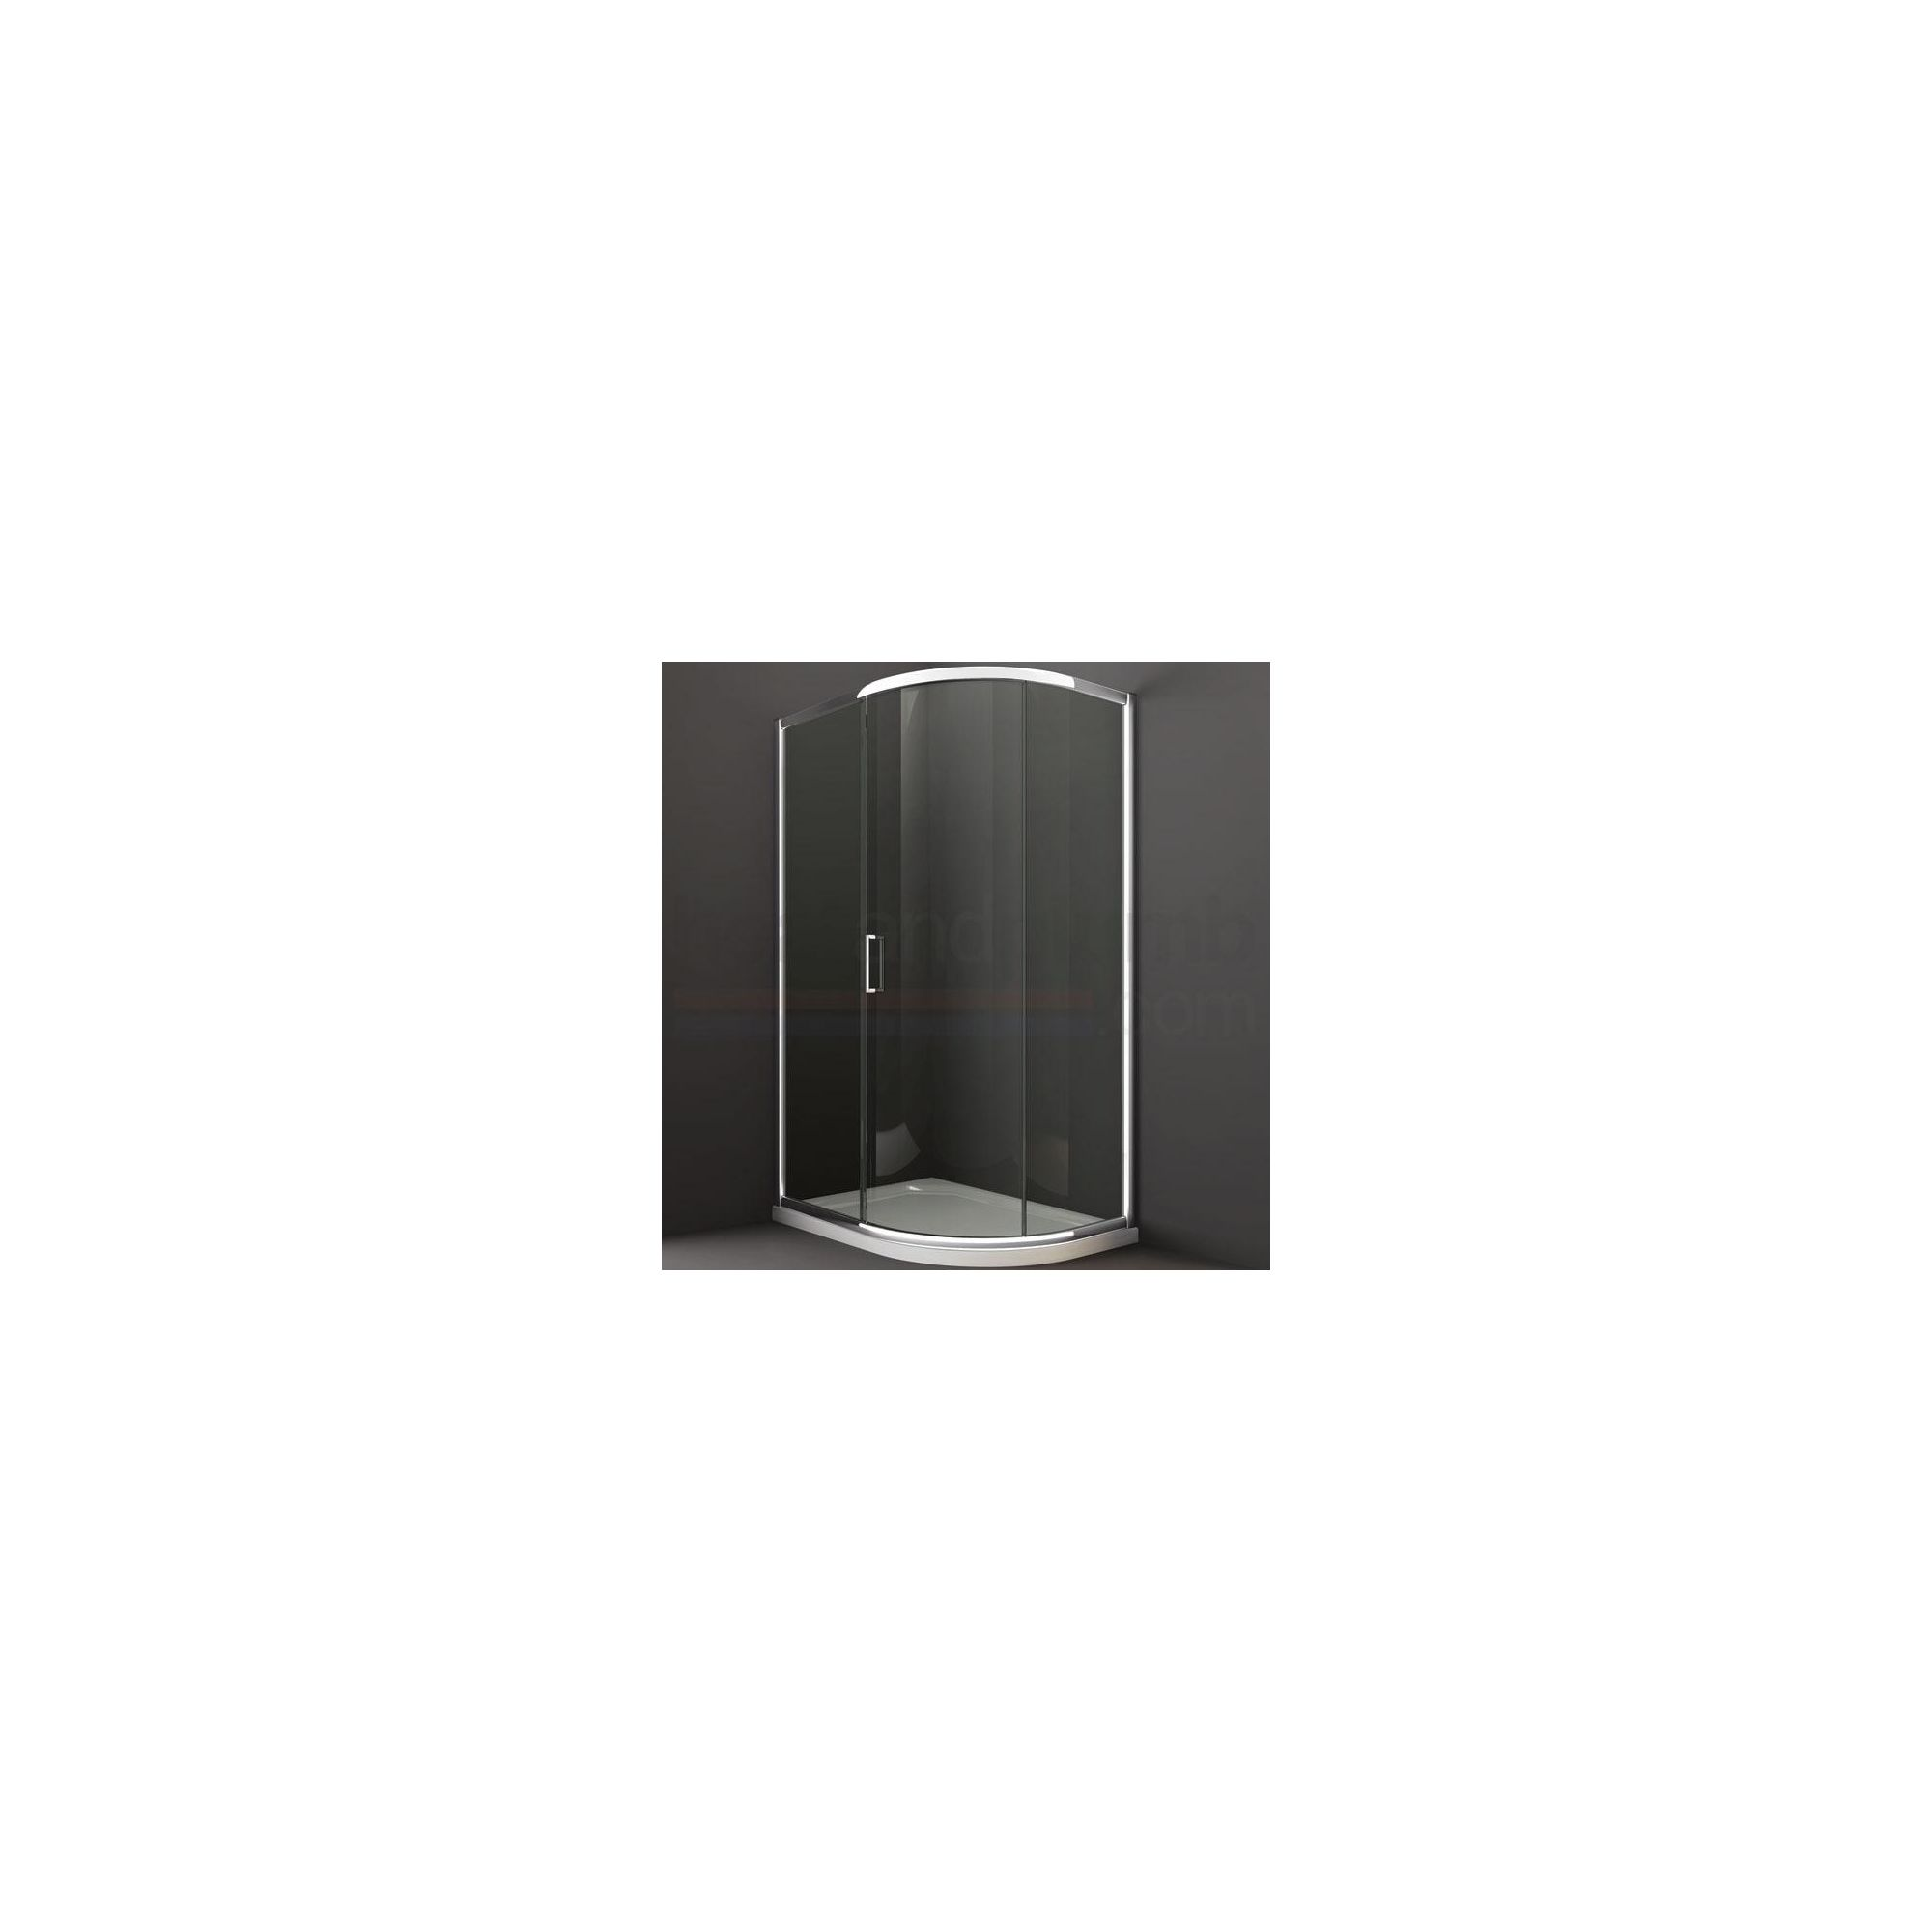 Merlyn Series 8 Sliding 1 Door Offset Quadrant Shower Enclosure, 1200mm x 900mm, Low Profile Tray, 8mm Glass at Tesco Direct